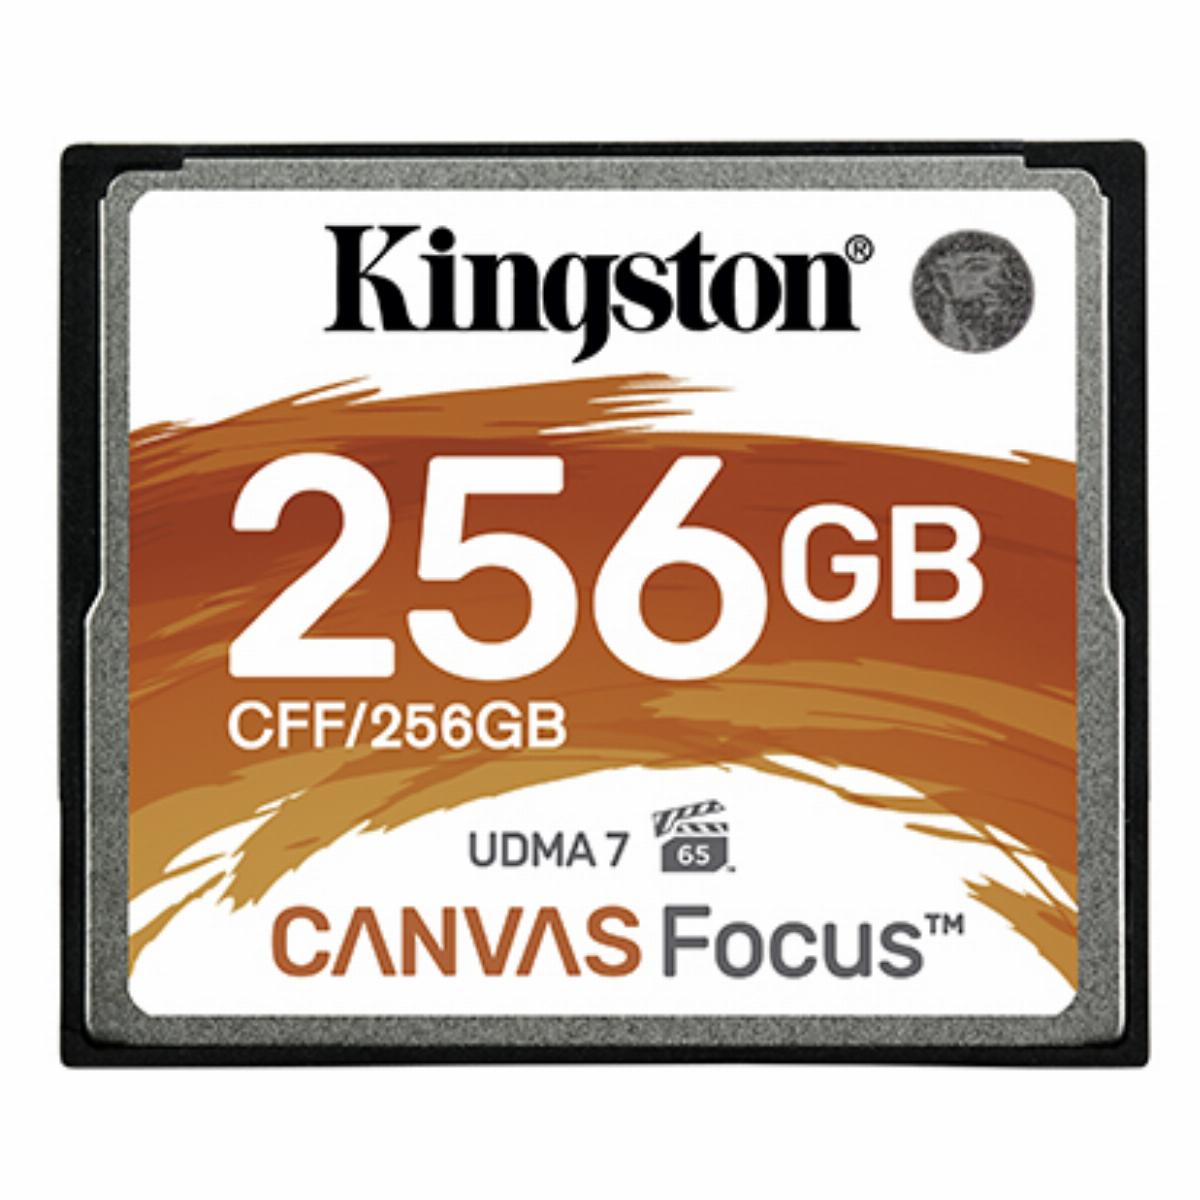 256GB CF CARD CANVAS FOCUS KIN